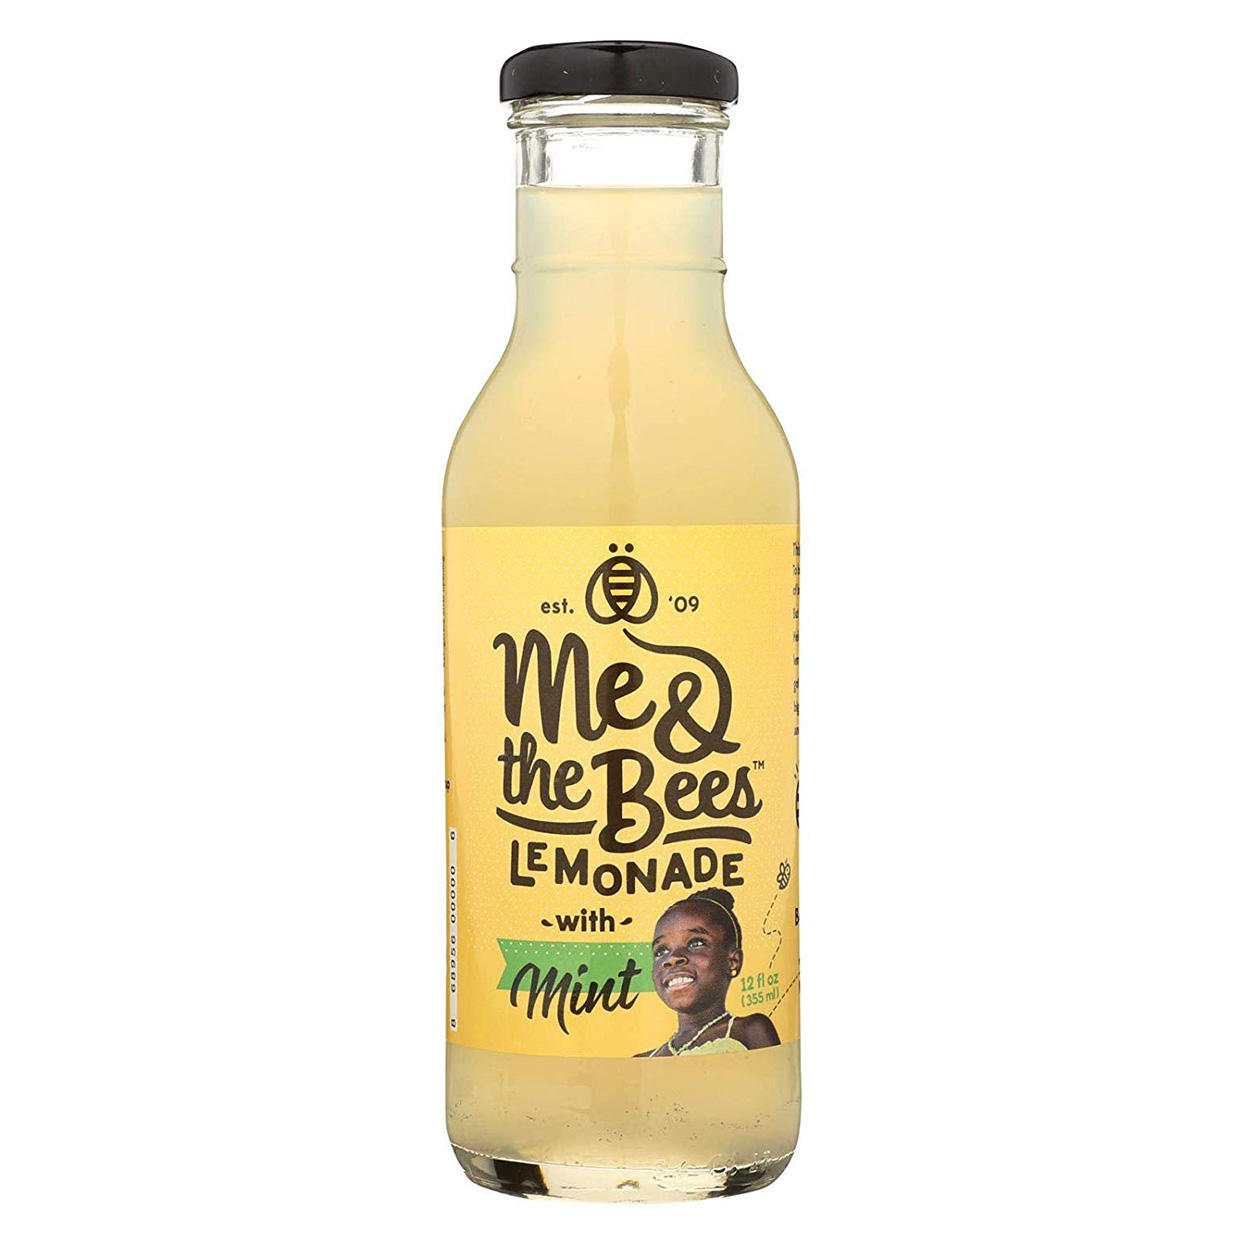 Bottle of Me & the Bees Lemonade with Mint